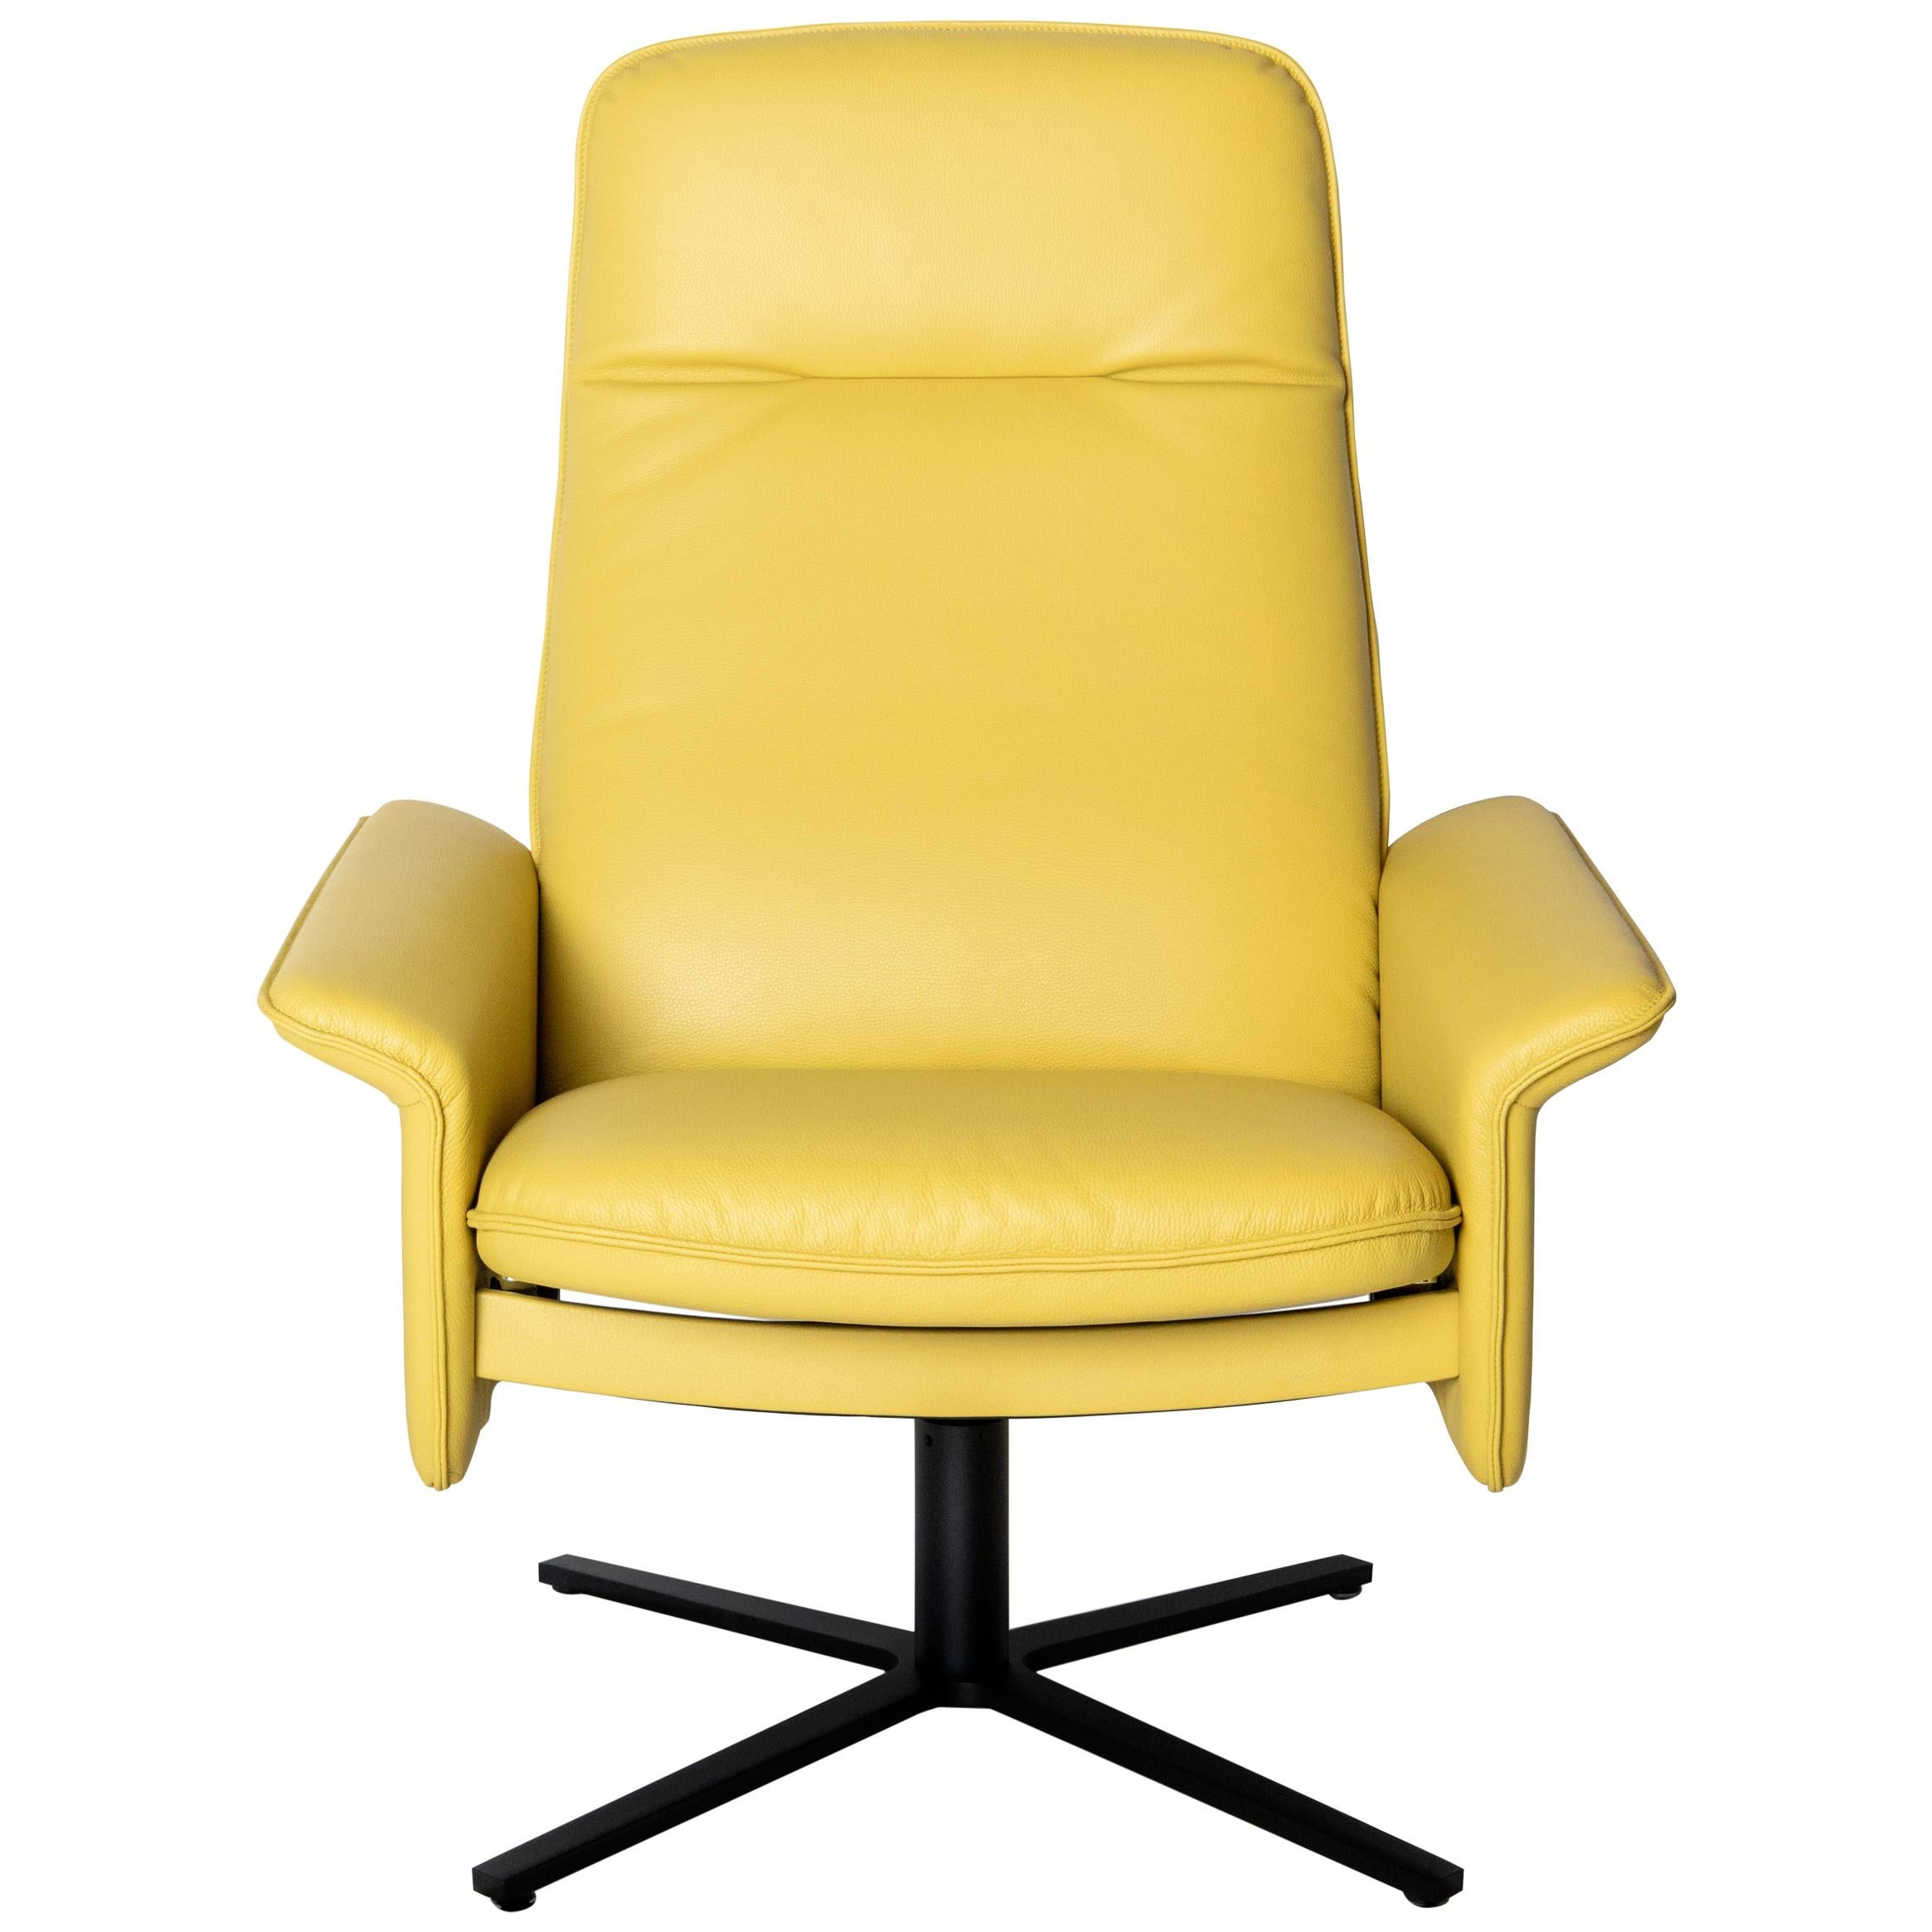 De Sede DS 55 High Back Chair in Yellow Leather Upholstery, De Sede Design Team